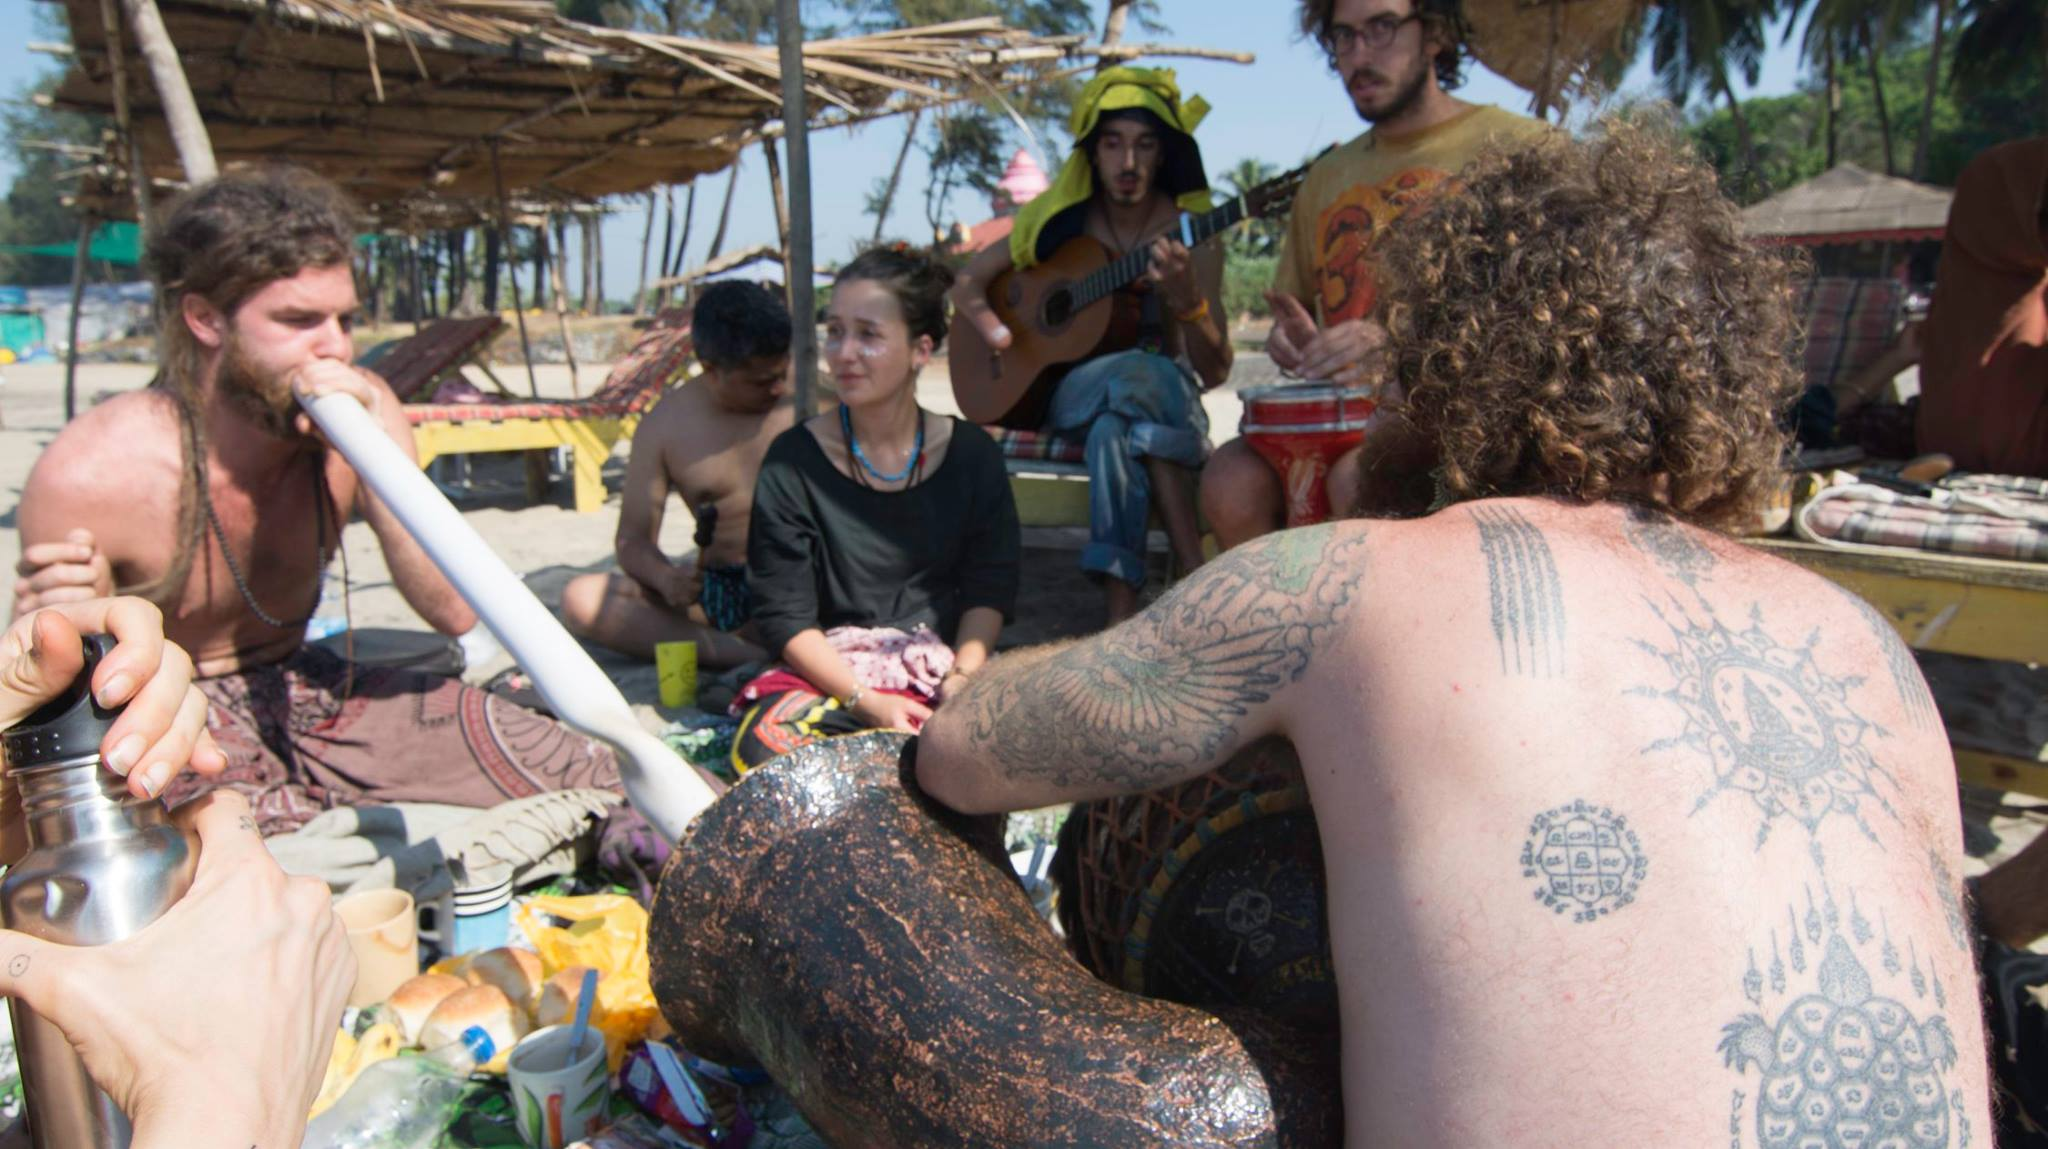 Hippie Goa! Keri and Arambol usually have a few hostels which brings diverse backpacker crowd to interact with